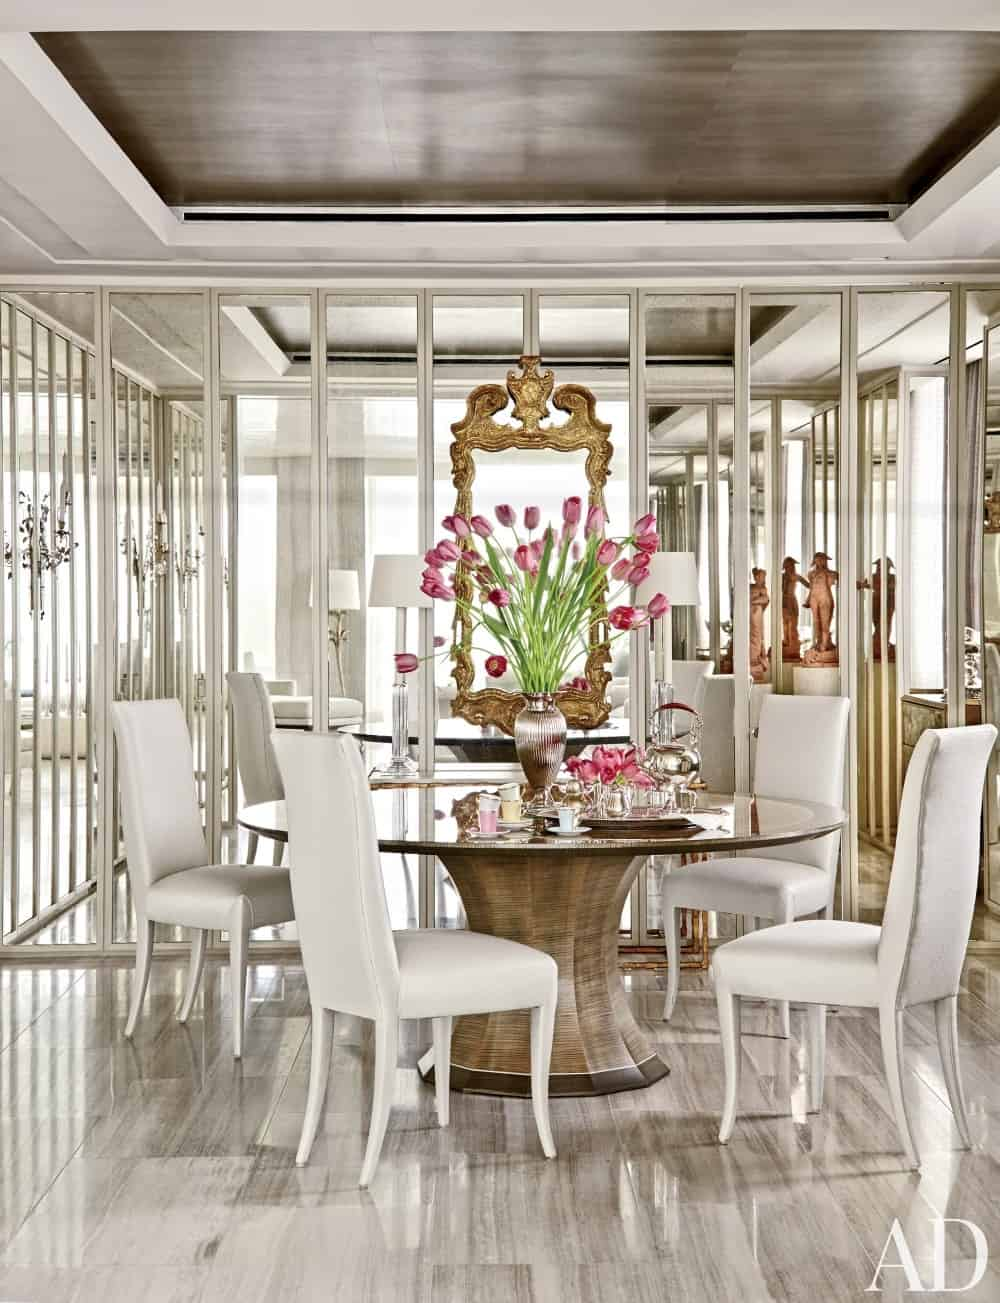 Architectural digest dining rooms